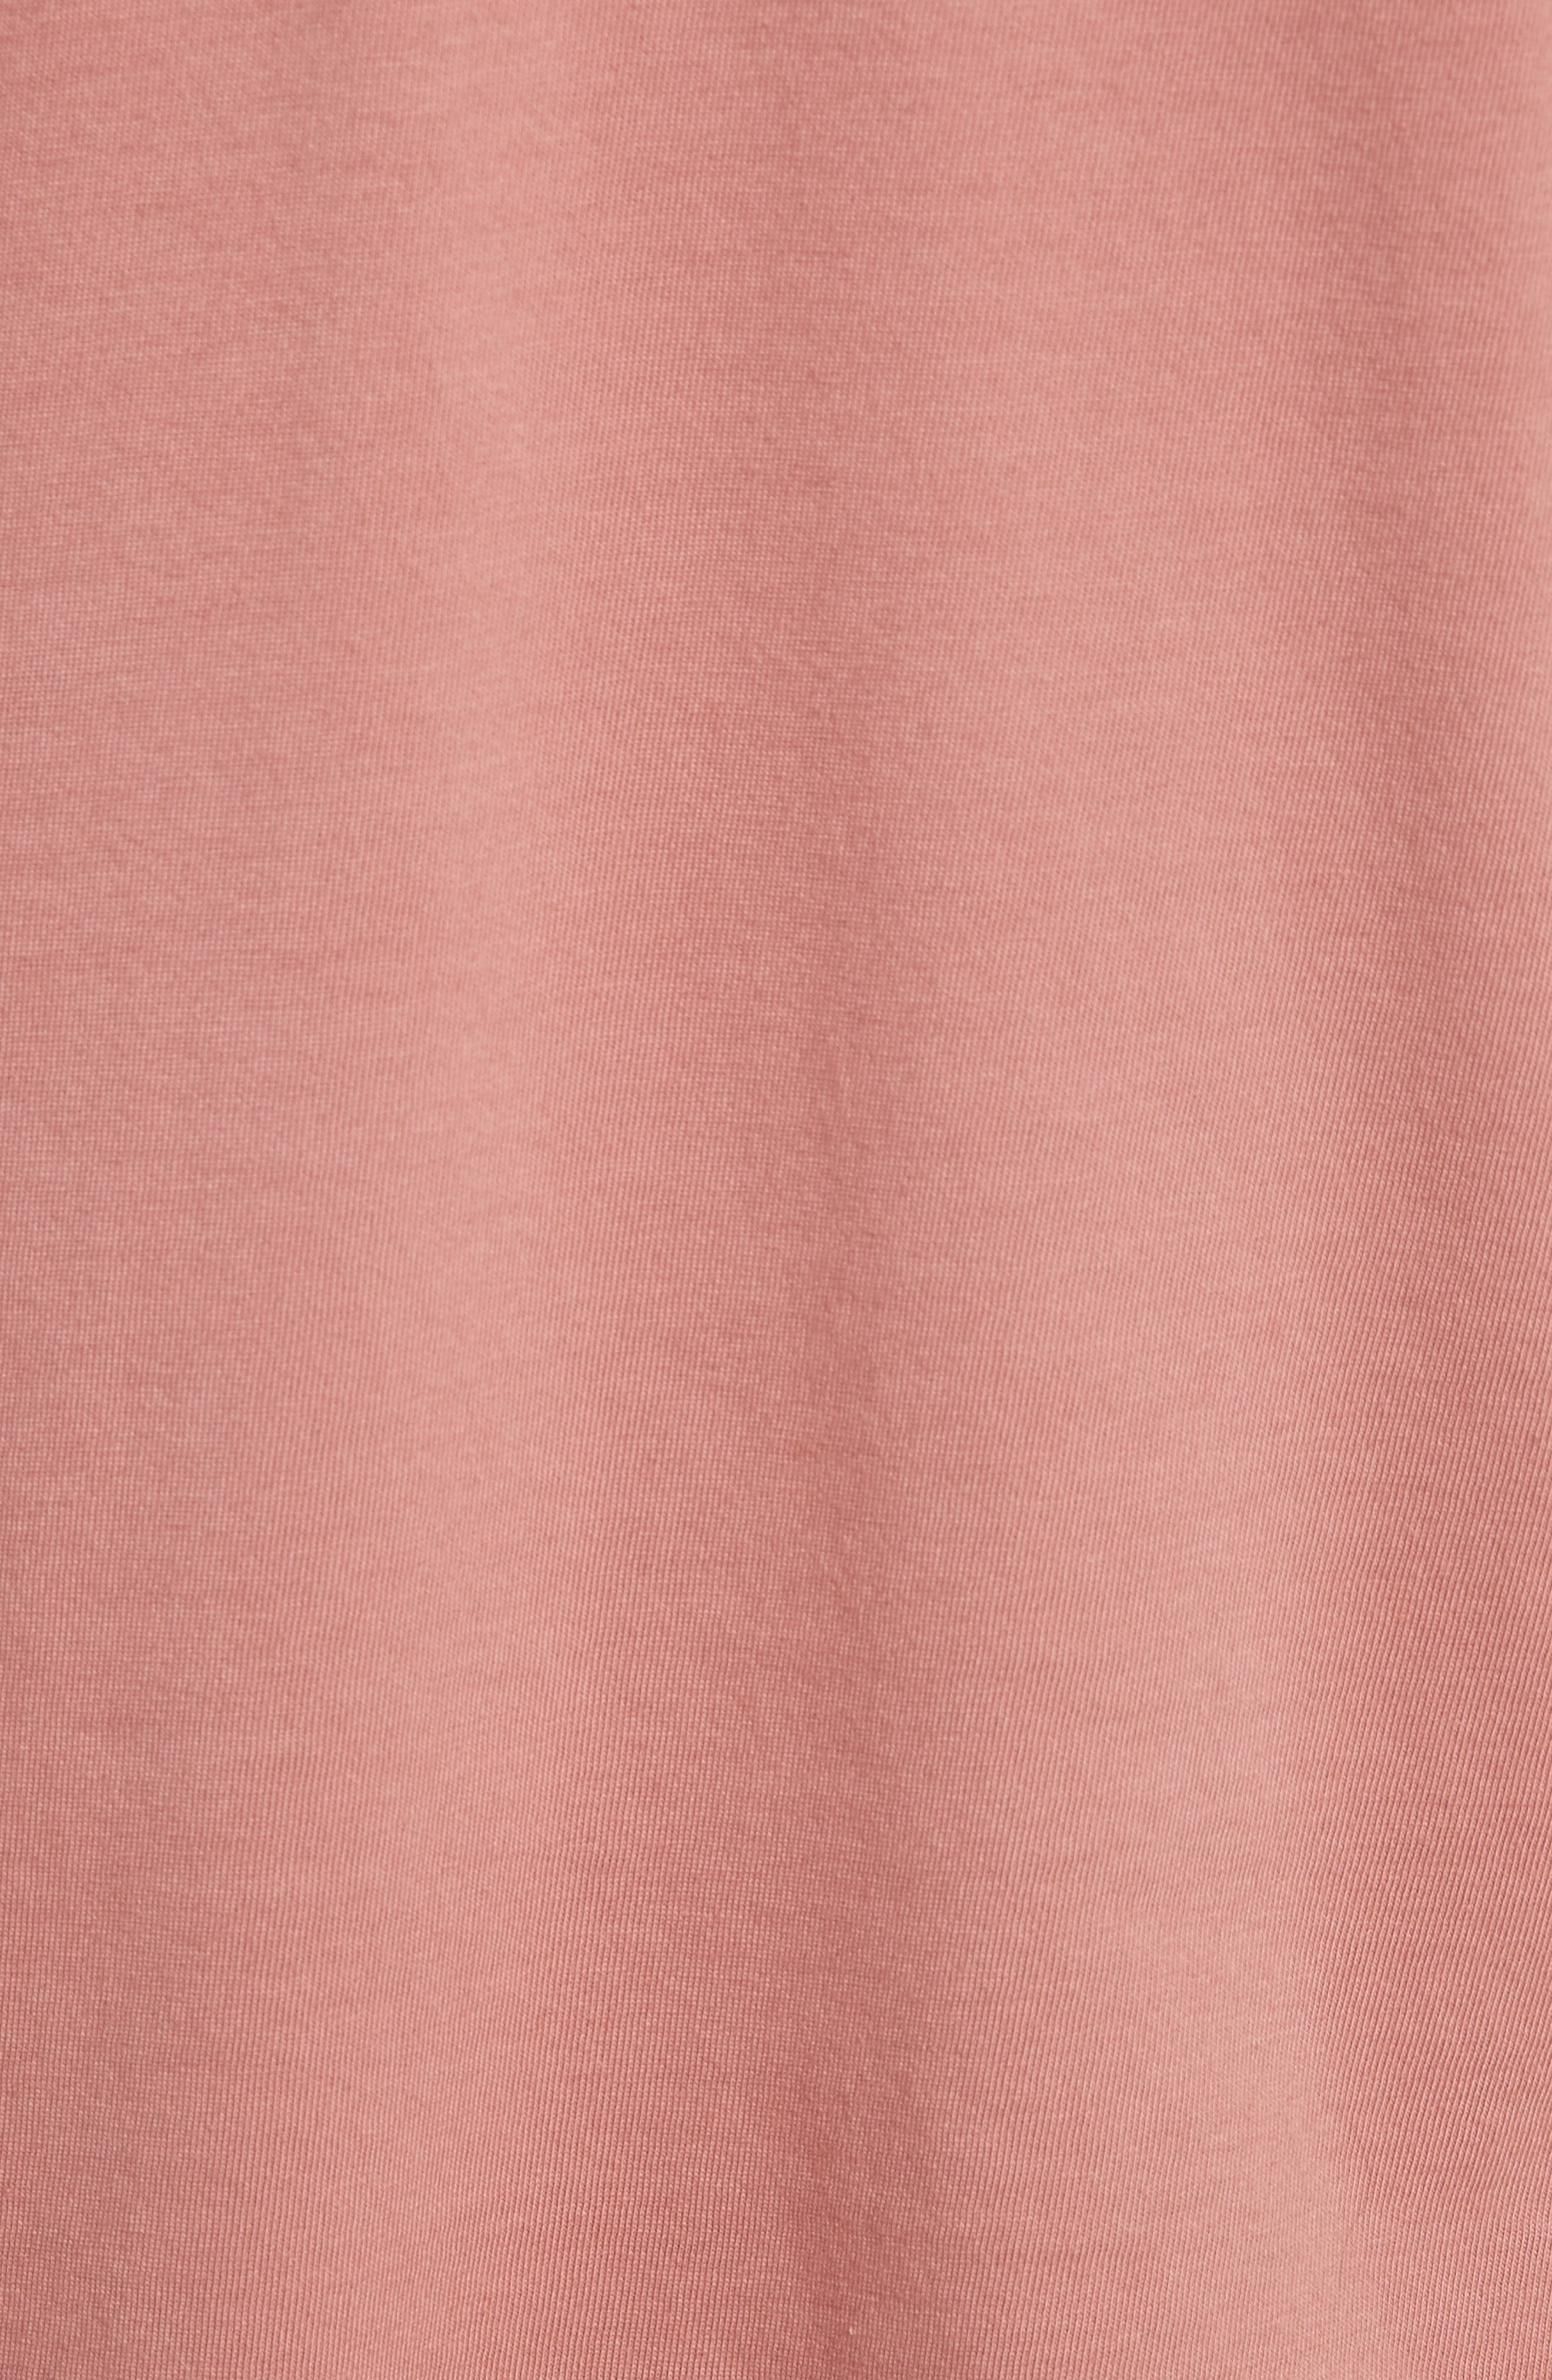 Point d'Esprit & Jersey Top,                             Alternate thumbnail 5, color,                             Antique Rose Light